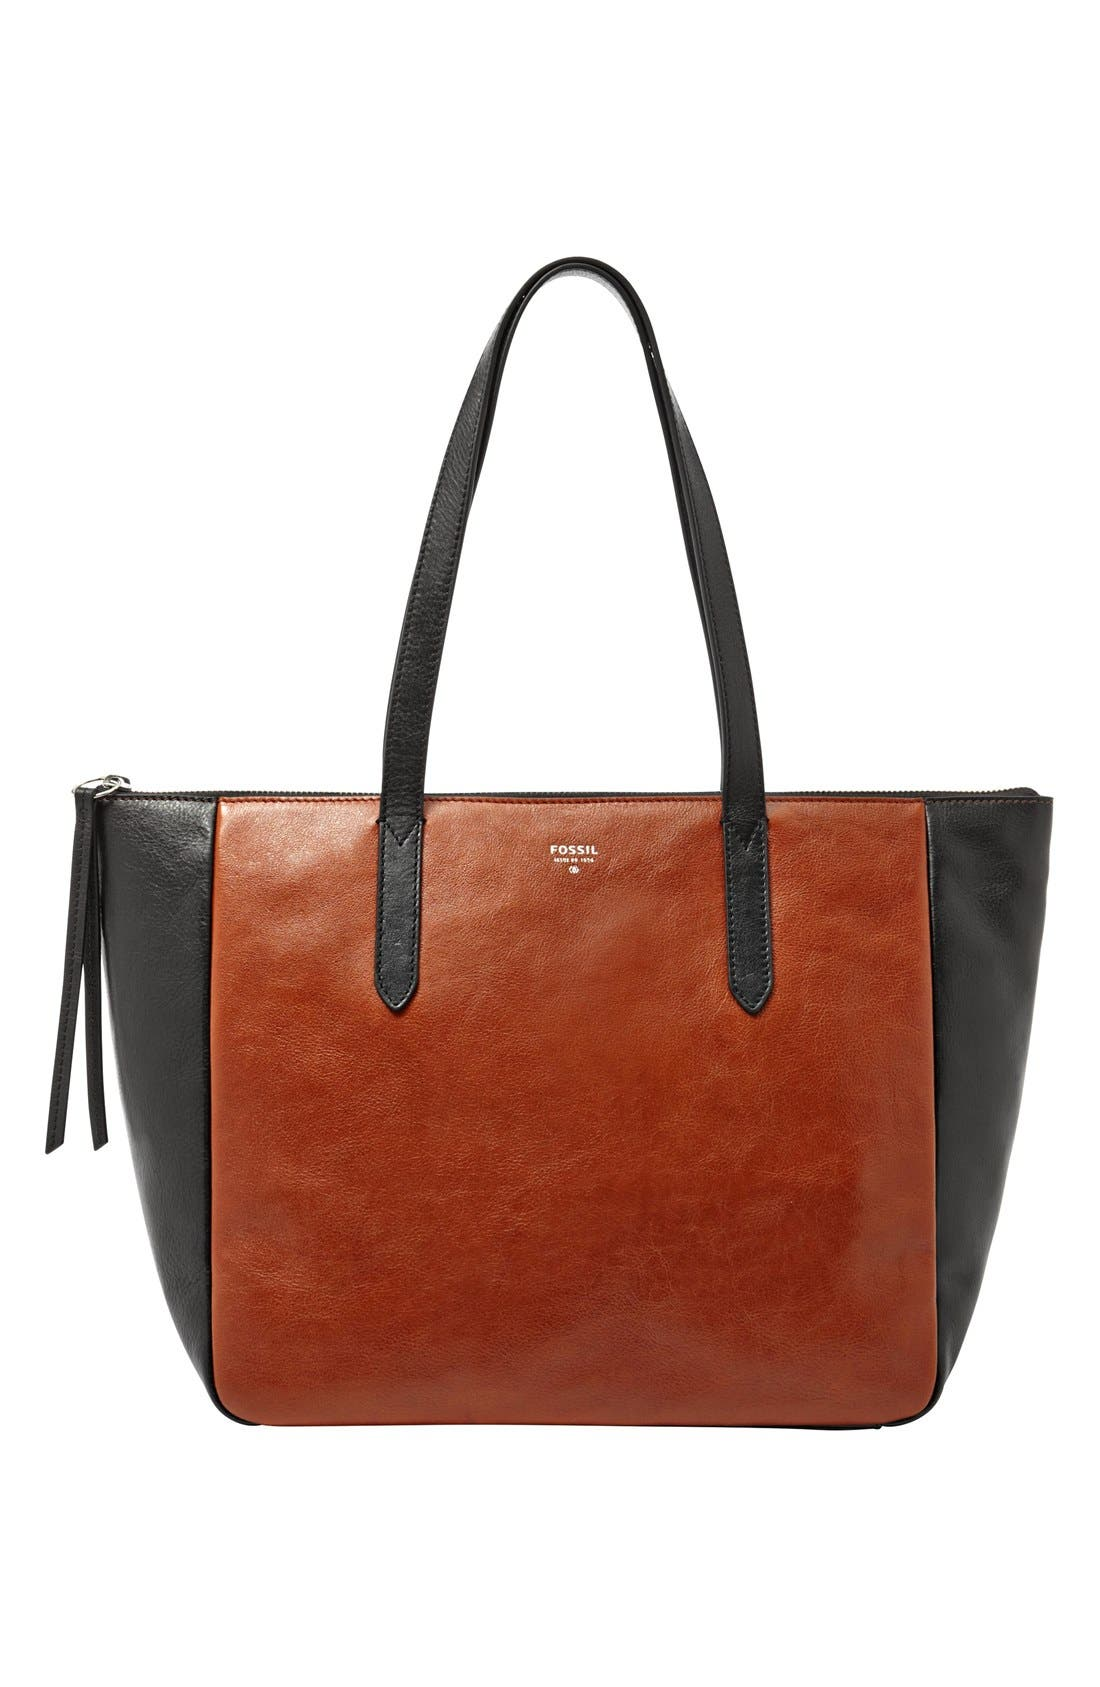 Alternate Image 1 Selected - Fossil 'Sydney' Colorblock Shopper